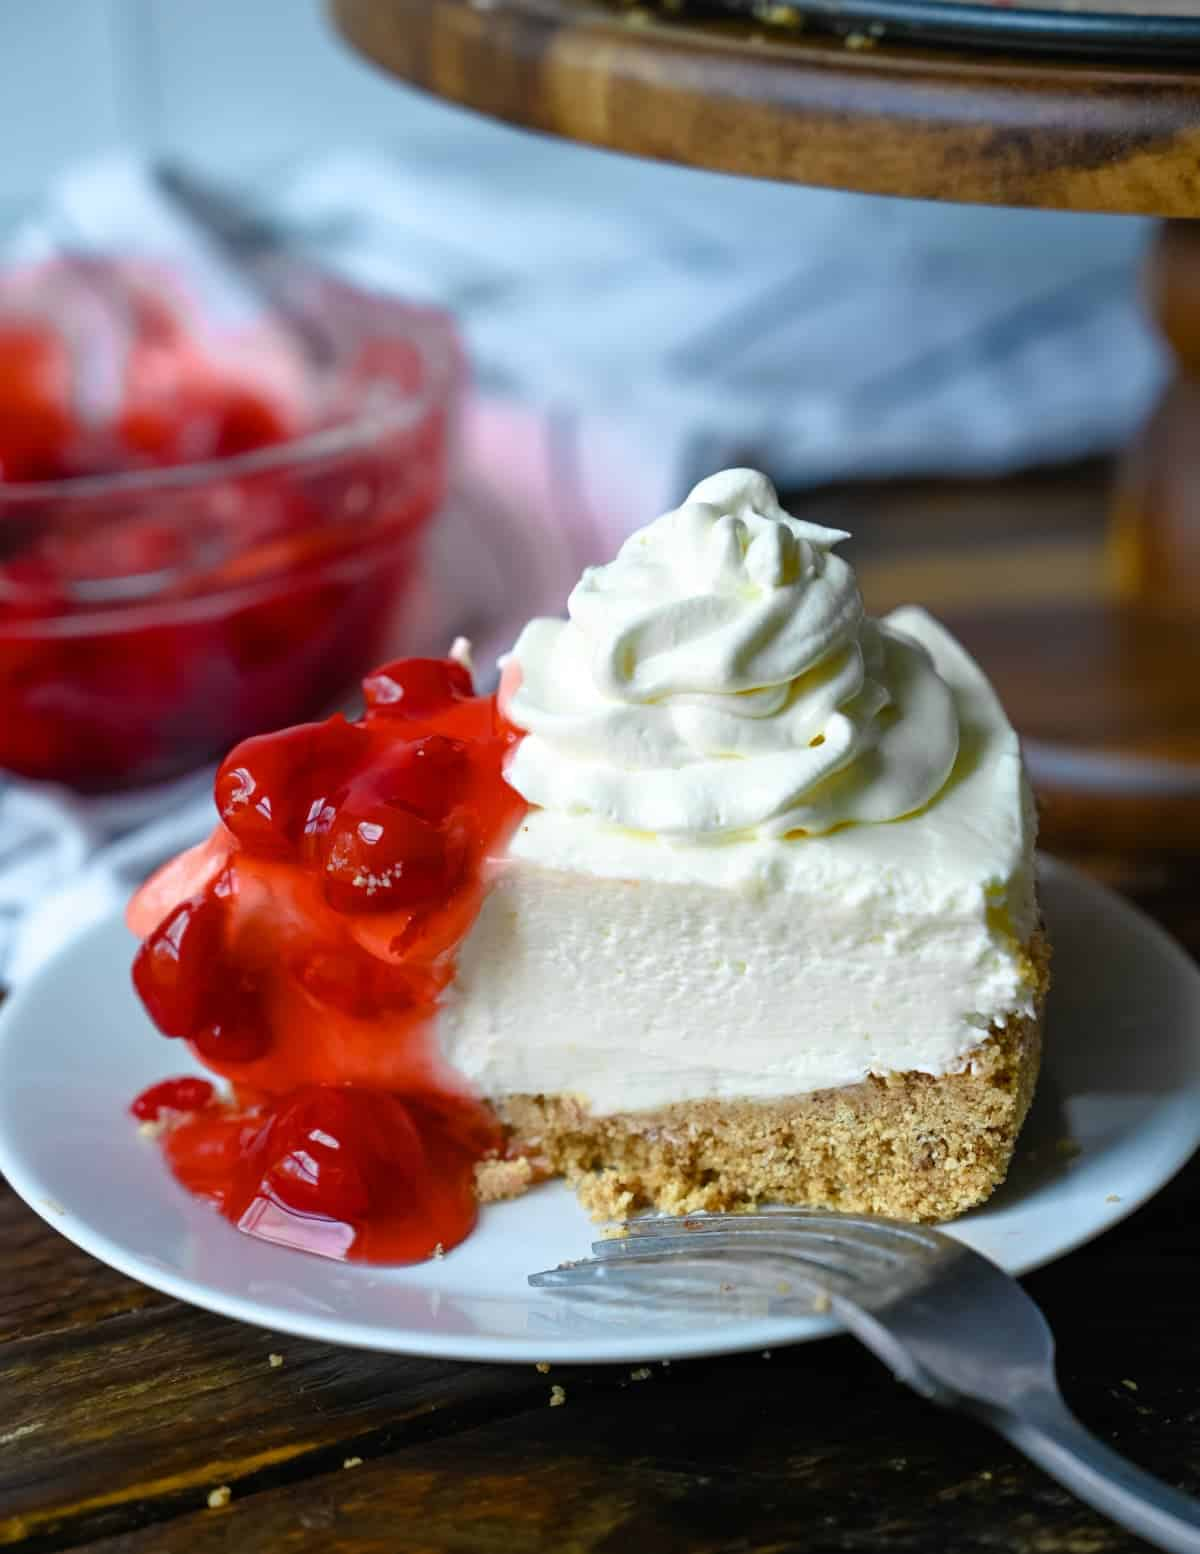 A slice of cheesecake on a small white plate with whipped cream and cherries on top.